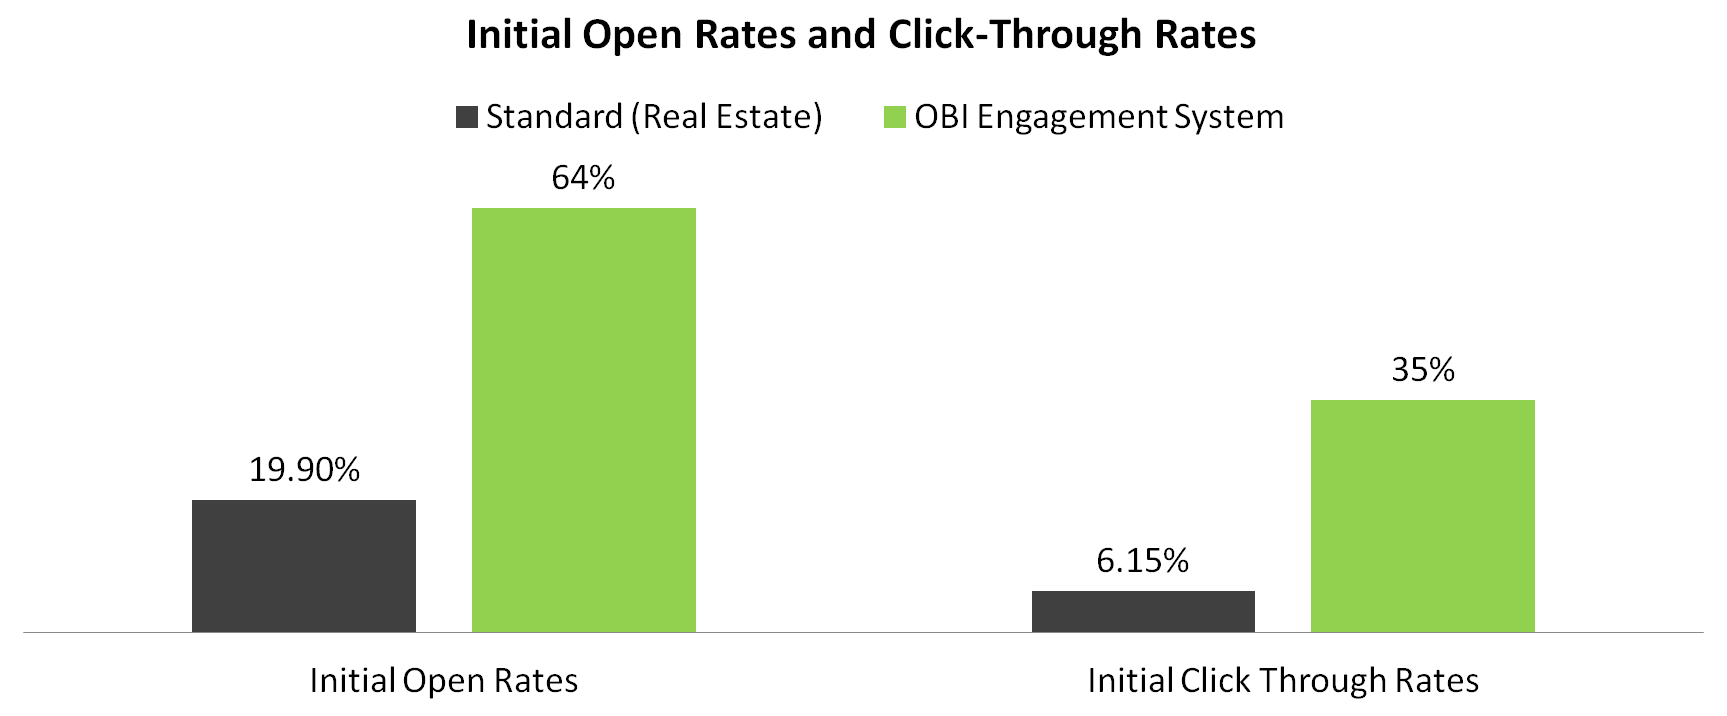 Open and Click Through Rates